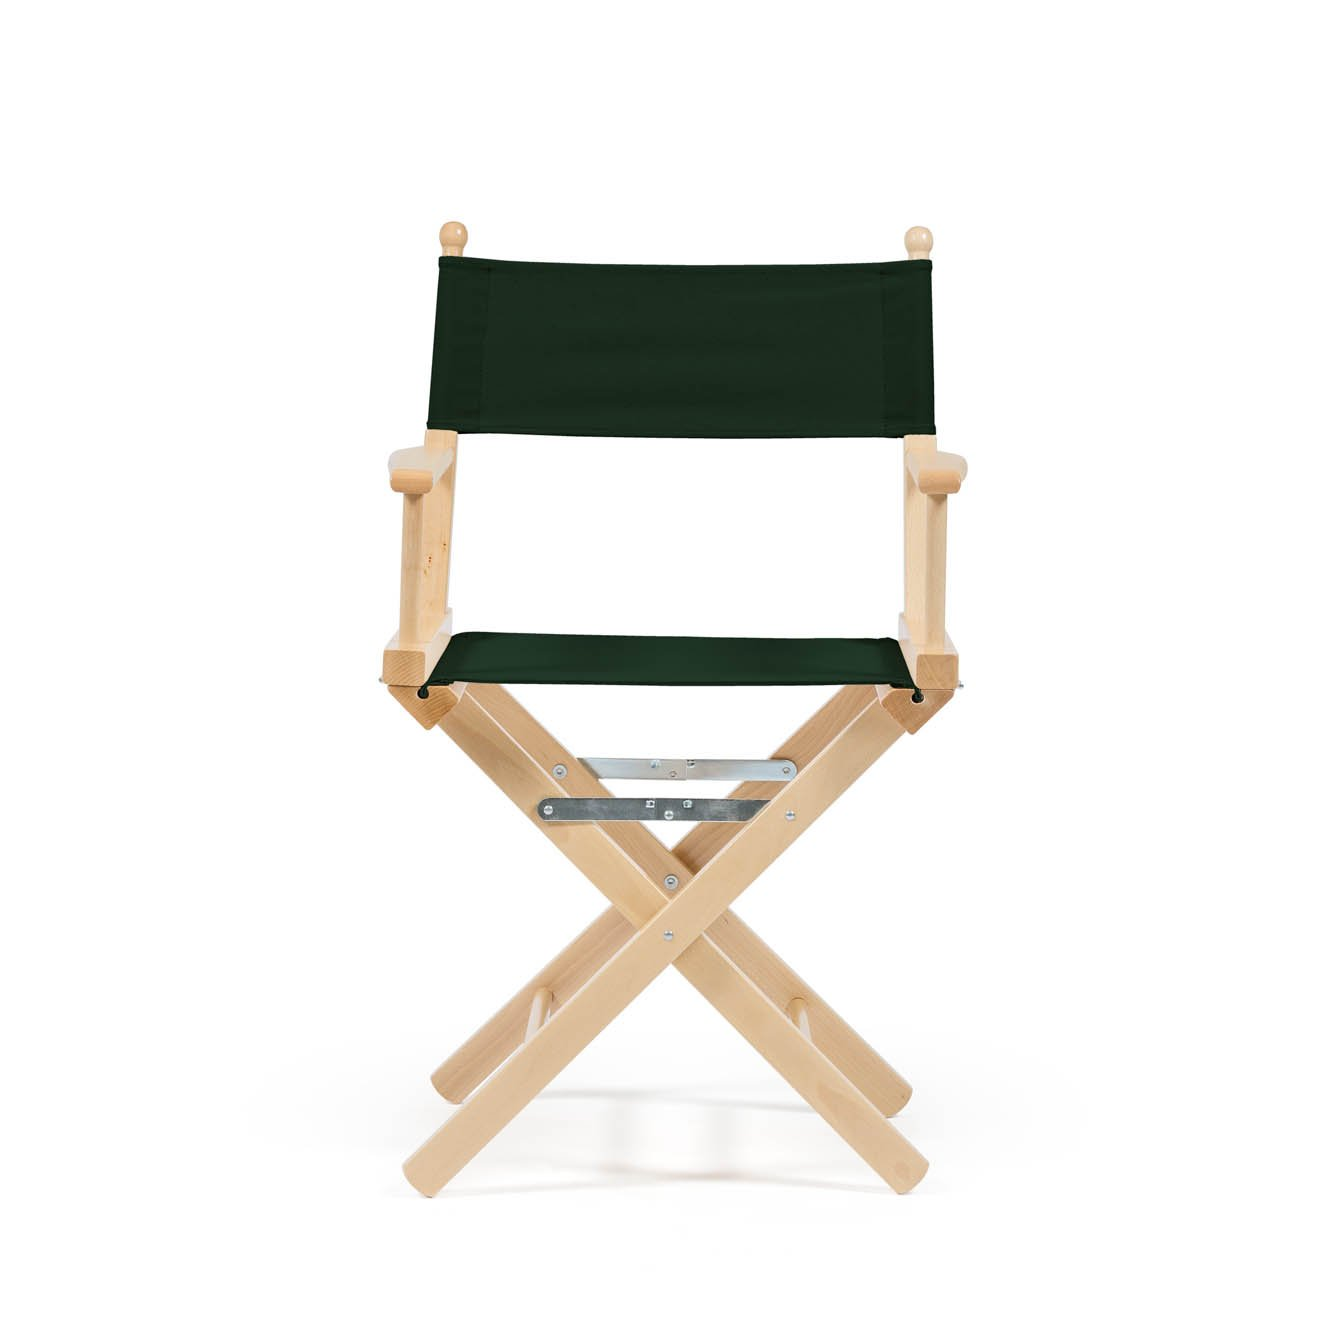 Telami Outlet Folding Beech Wooden Directors Chair Made in Italy 52x46x91,5 cm Dark Green Colour on Waterproof Fabric for Outdoor Furniture